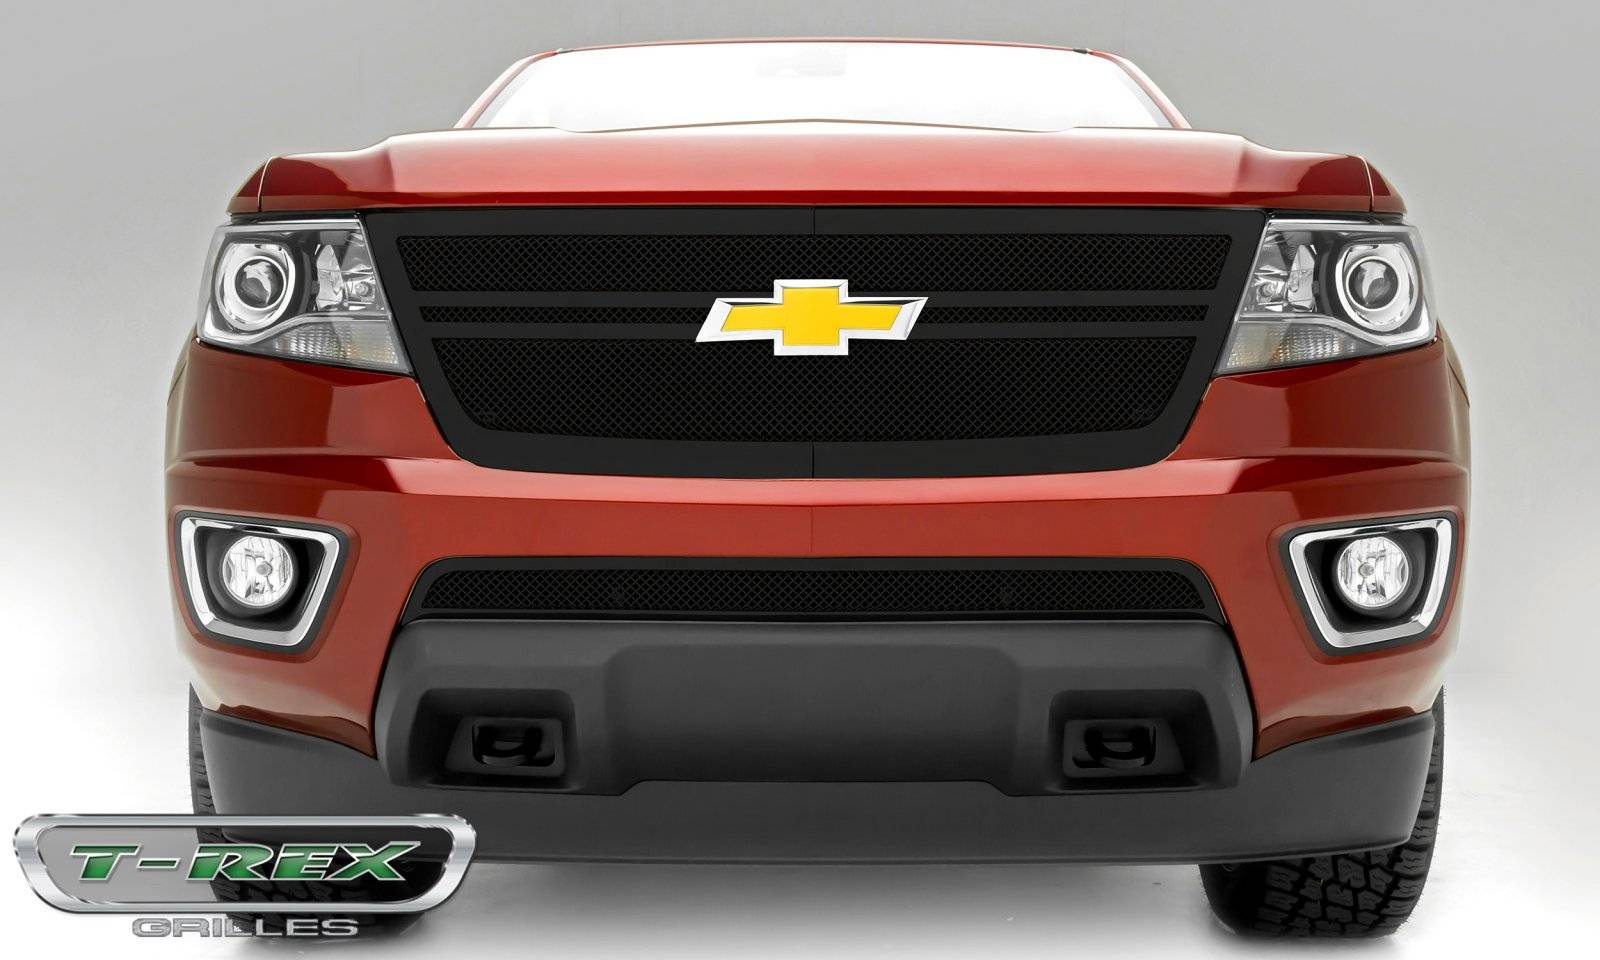 T-REX Chevrolet Colorado - Upper Class Series - Center 2 Bar Design - Replacement Main Grille with Black Powdercoat Finish - Pt # 51268